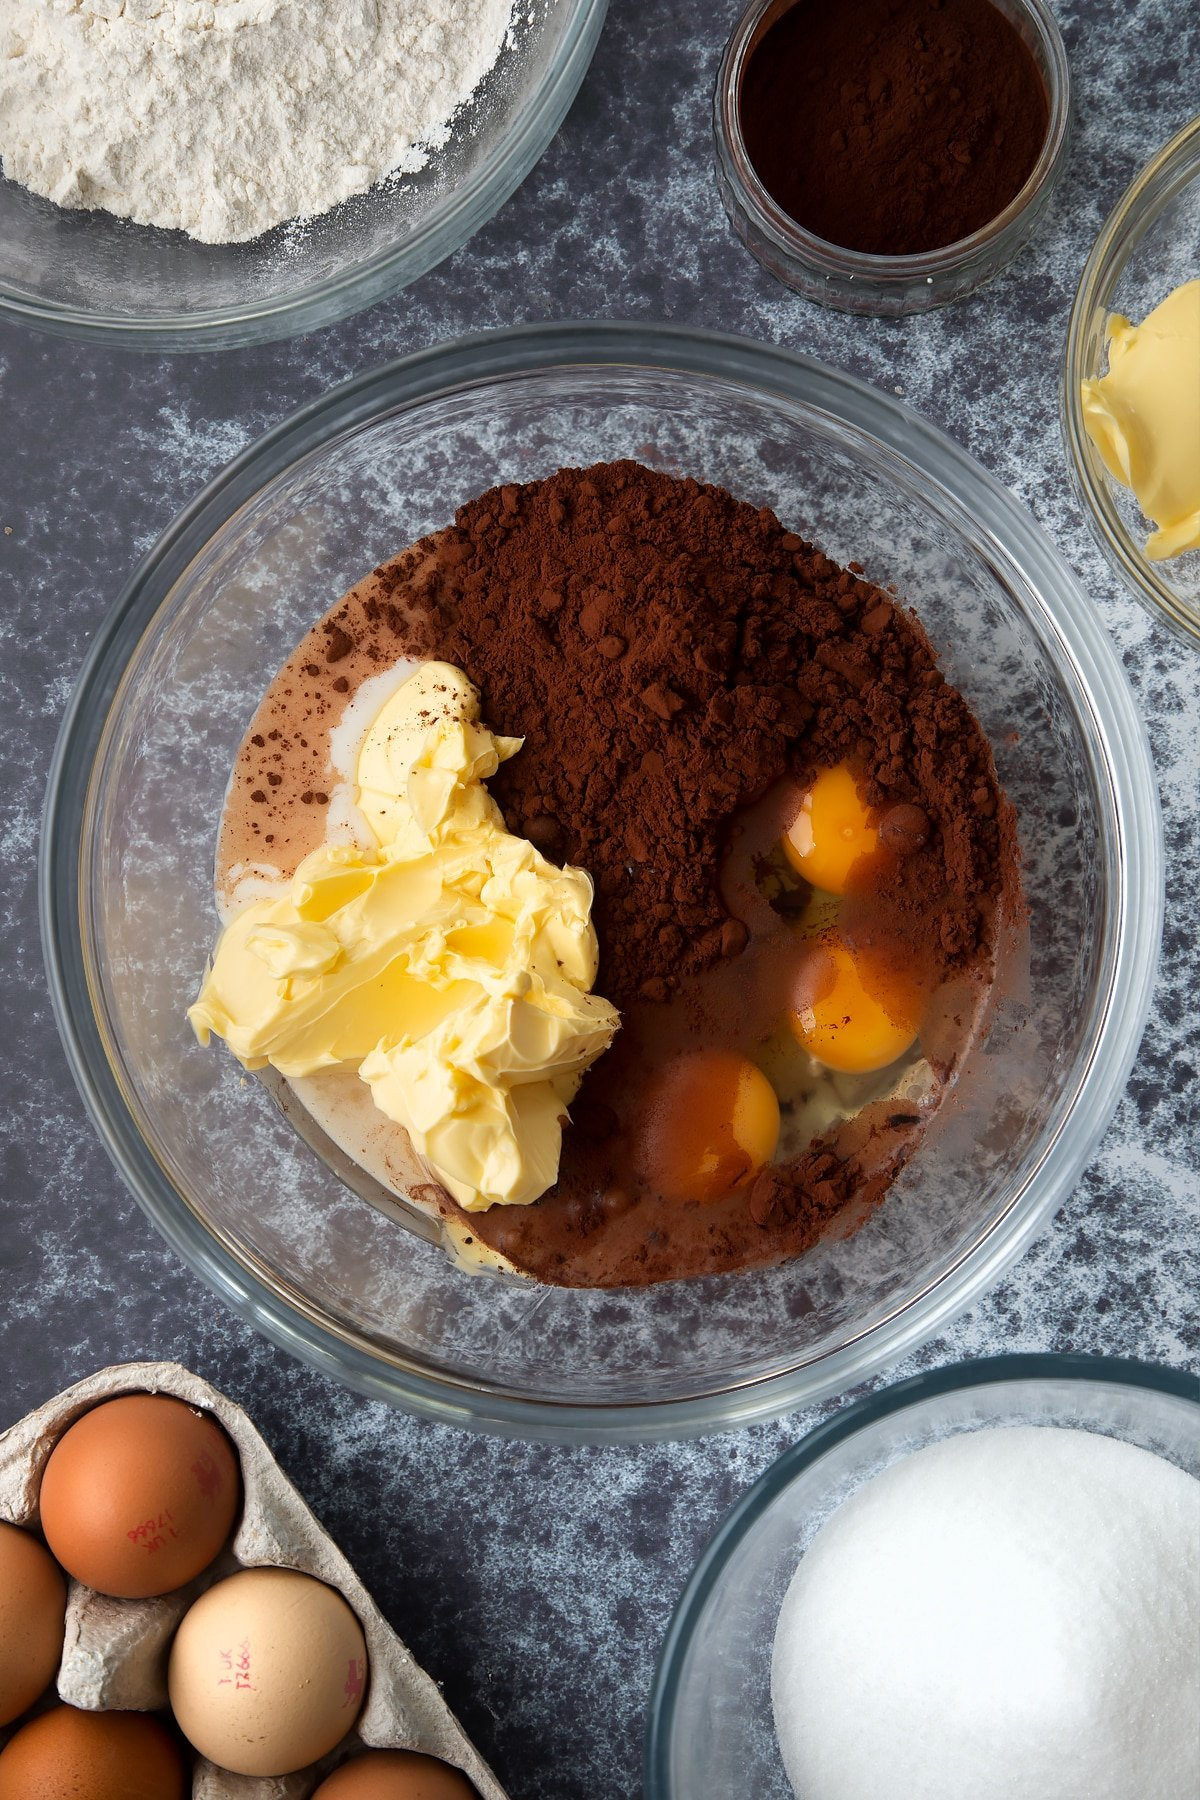 Margarine, oil, caster sugar, milk, cocoa and eggs in a large mixing bowl. Ingredients to make gory Halloween cupcakes surround the bowl.